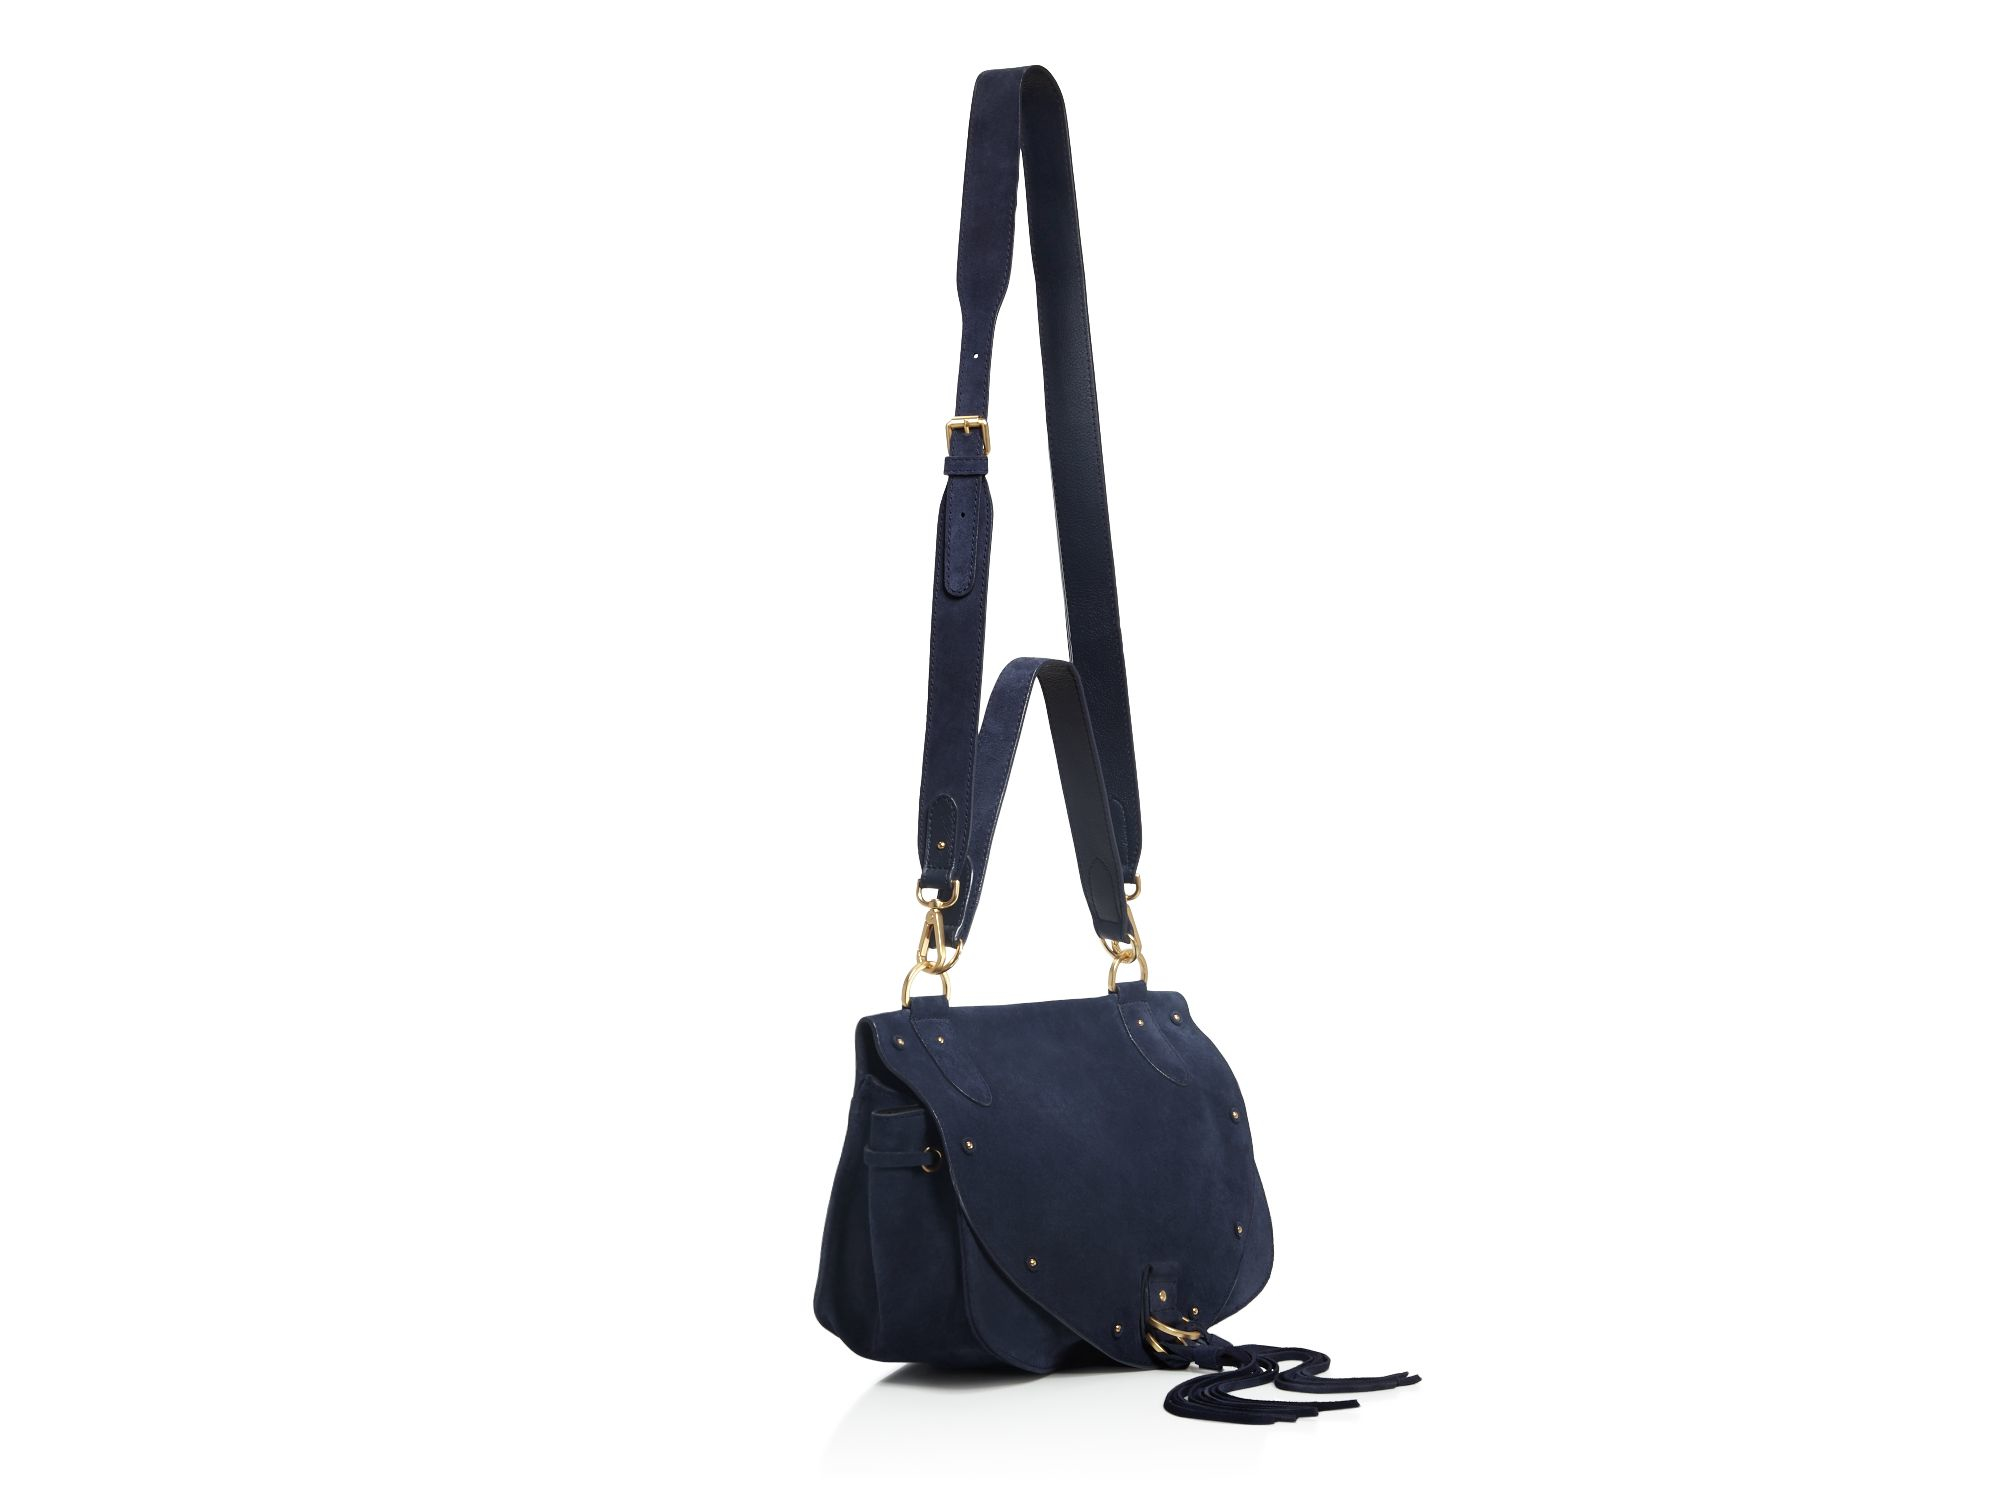 chleo handbags - See by chlo�� Collins Suede Saddle Bag in Black (Midnight) | Lyst